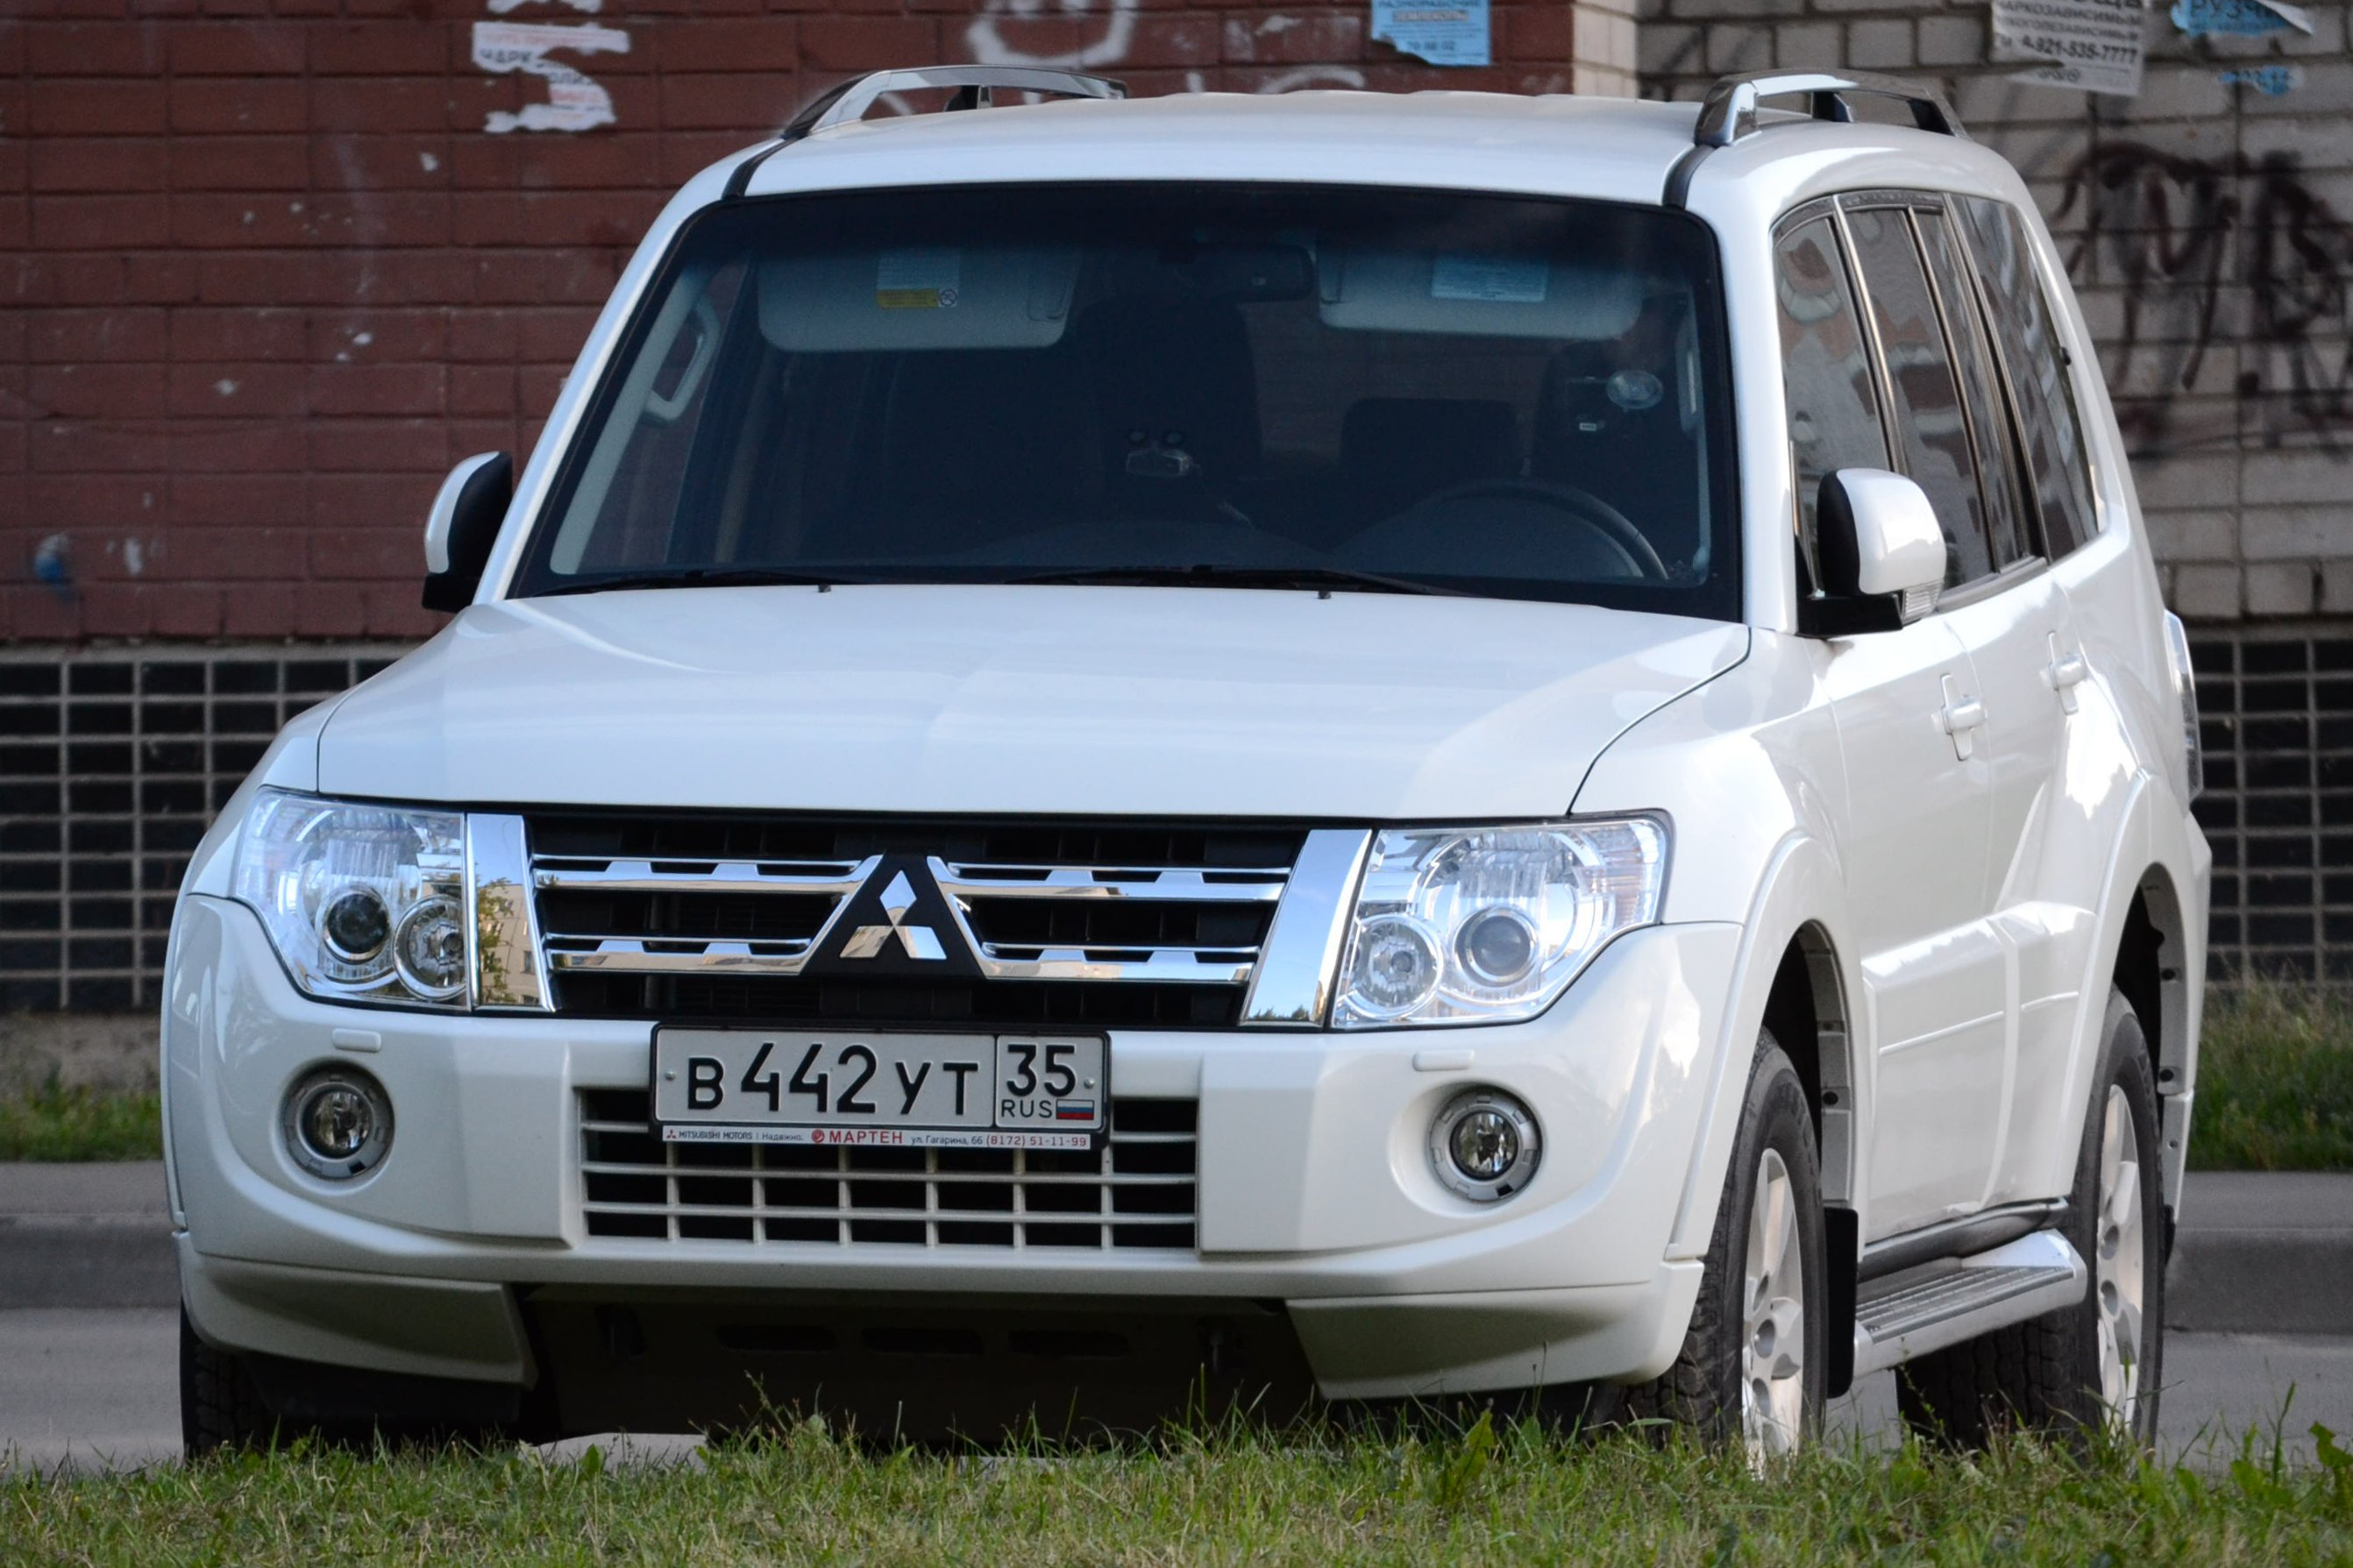 Build Your Mitsubishi >> File:Mitsubishi Pajero 2012.JPG - Wikimedia Commons